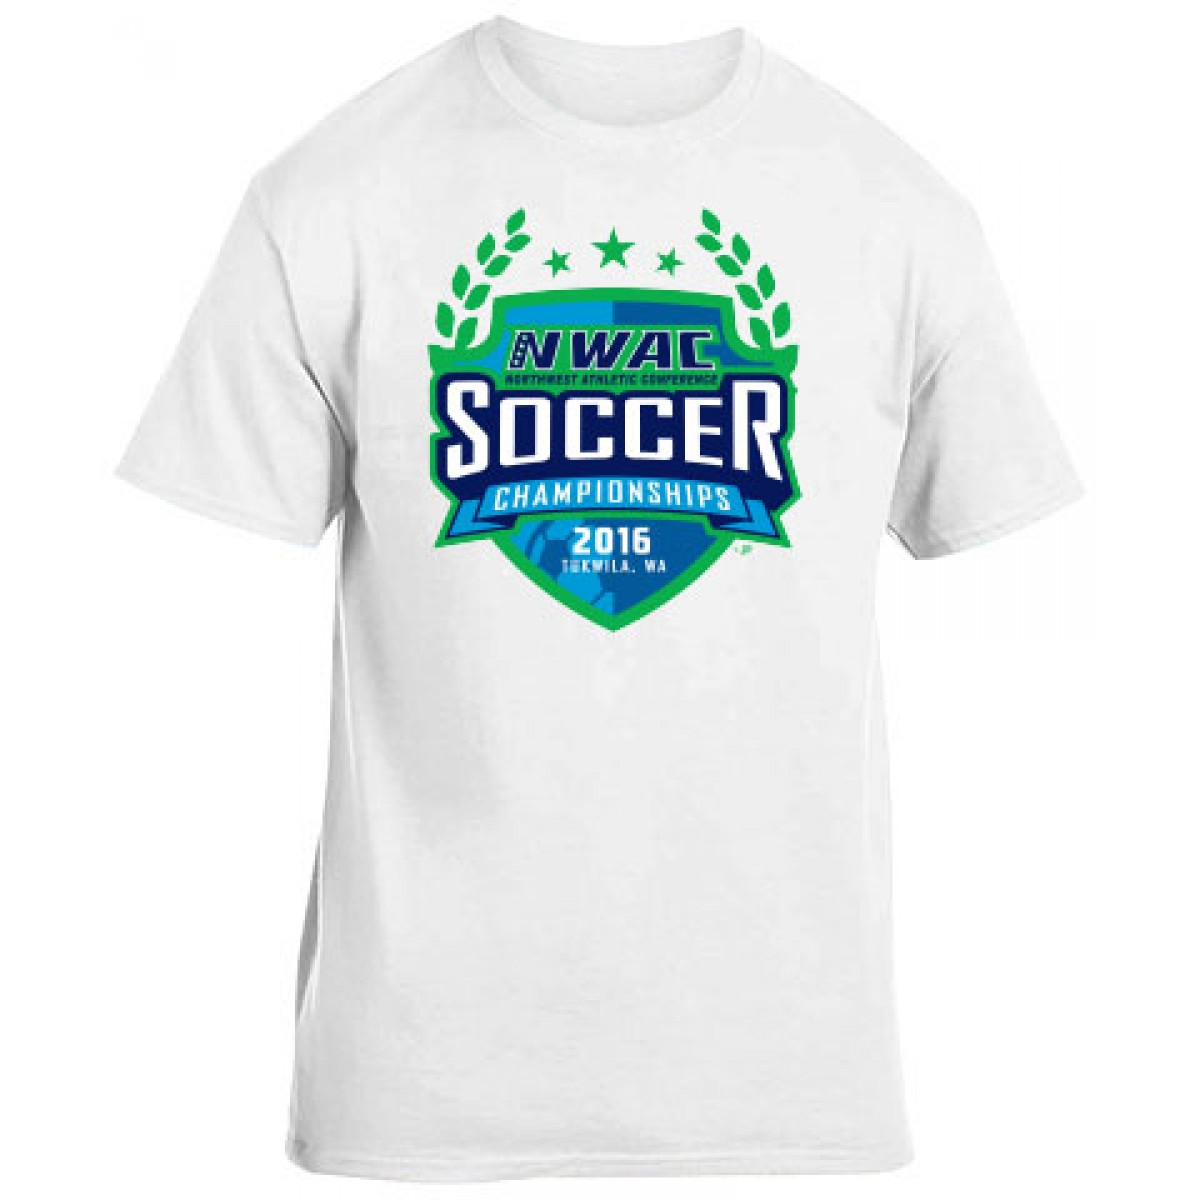 2016 NWAC Soccer Championships Special Item-White-YM